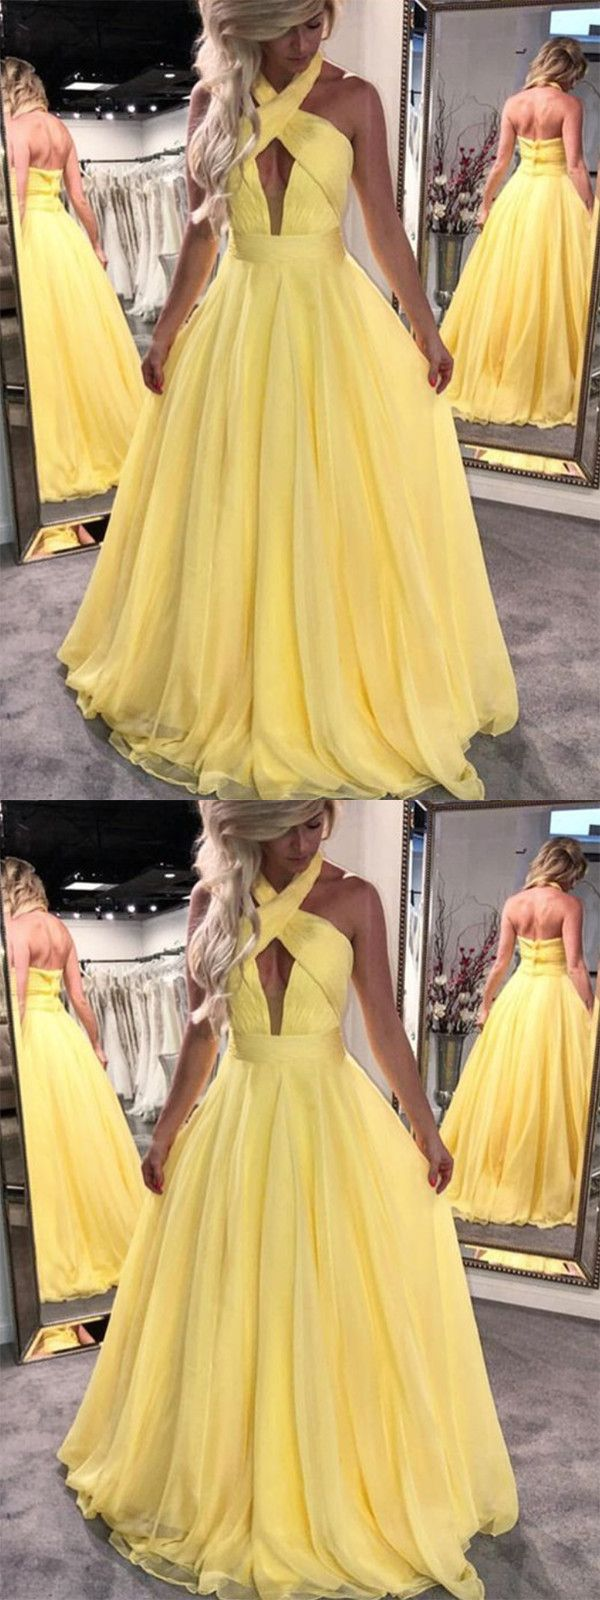 prom dresses long,prom dresses modest,prom dresses simple,prom dresses cheap,african prom dresses,prom dresses 2018,prom dresses graduacion,prom dresses chiffon,prom dresses a line,prom dresses yellow,prom dresses plus size #demidress #promdress #promdresses #promdresslong #chiffondress #yellow #womenswear #womensclothing #womenstyle